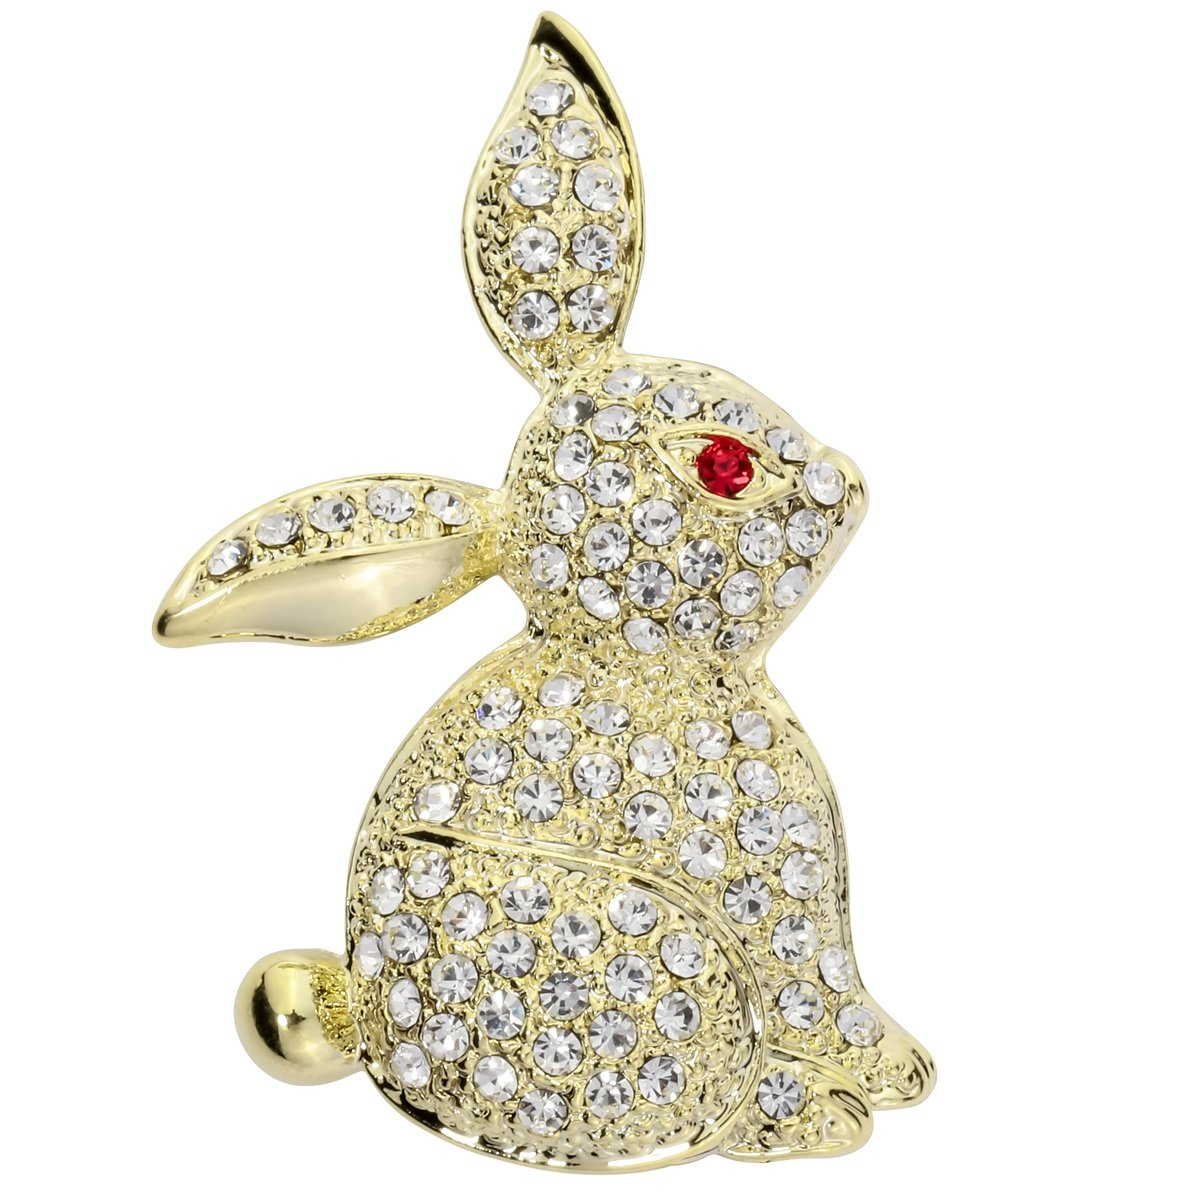 Szxc Jewelry Easter Bunny Rabbit Custom Brooch Pin For Women Teen Girls (gold)